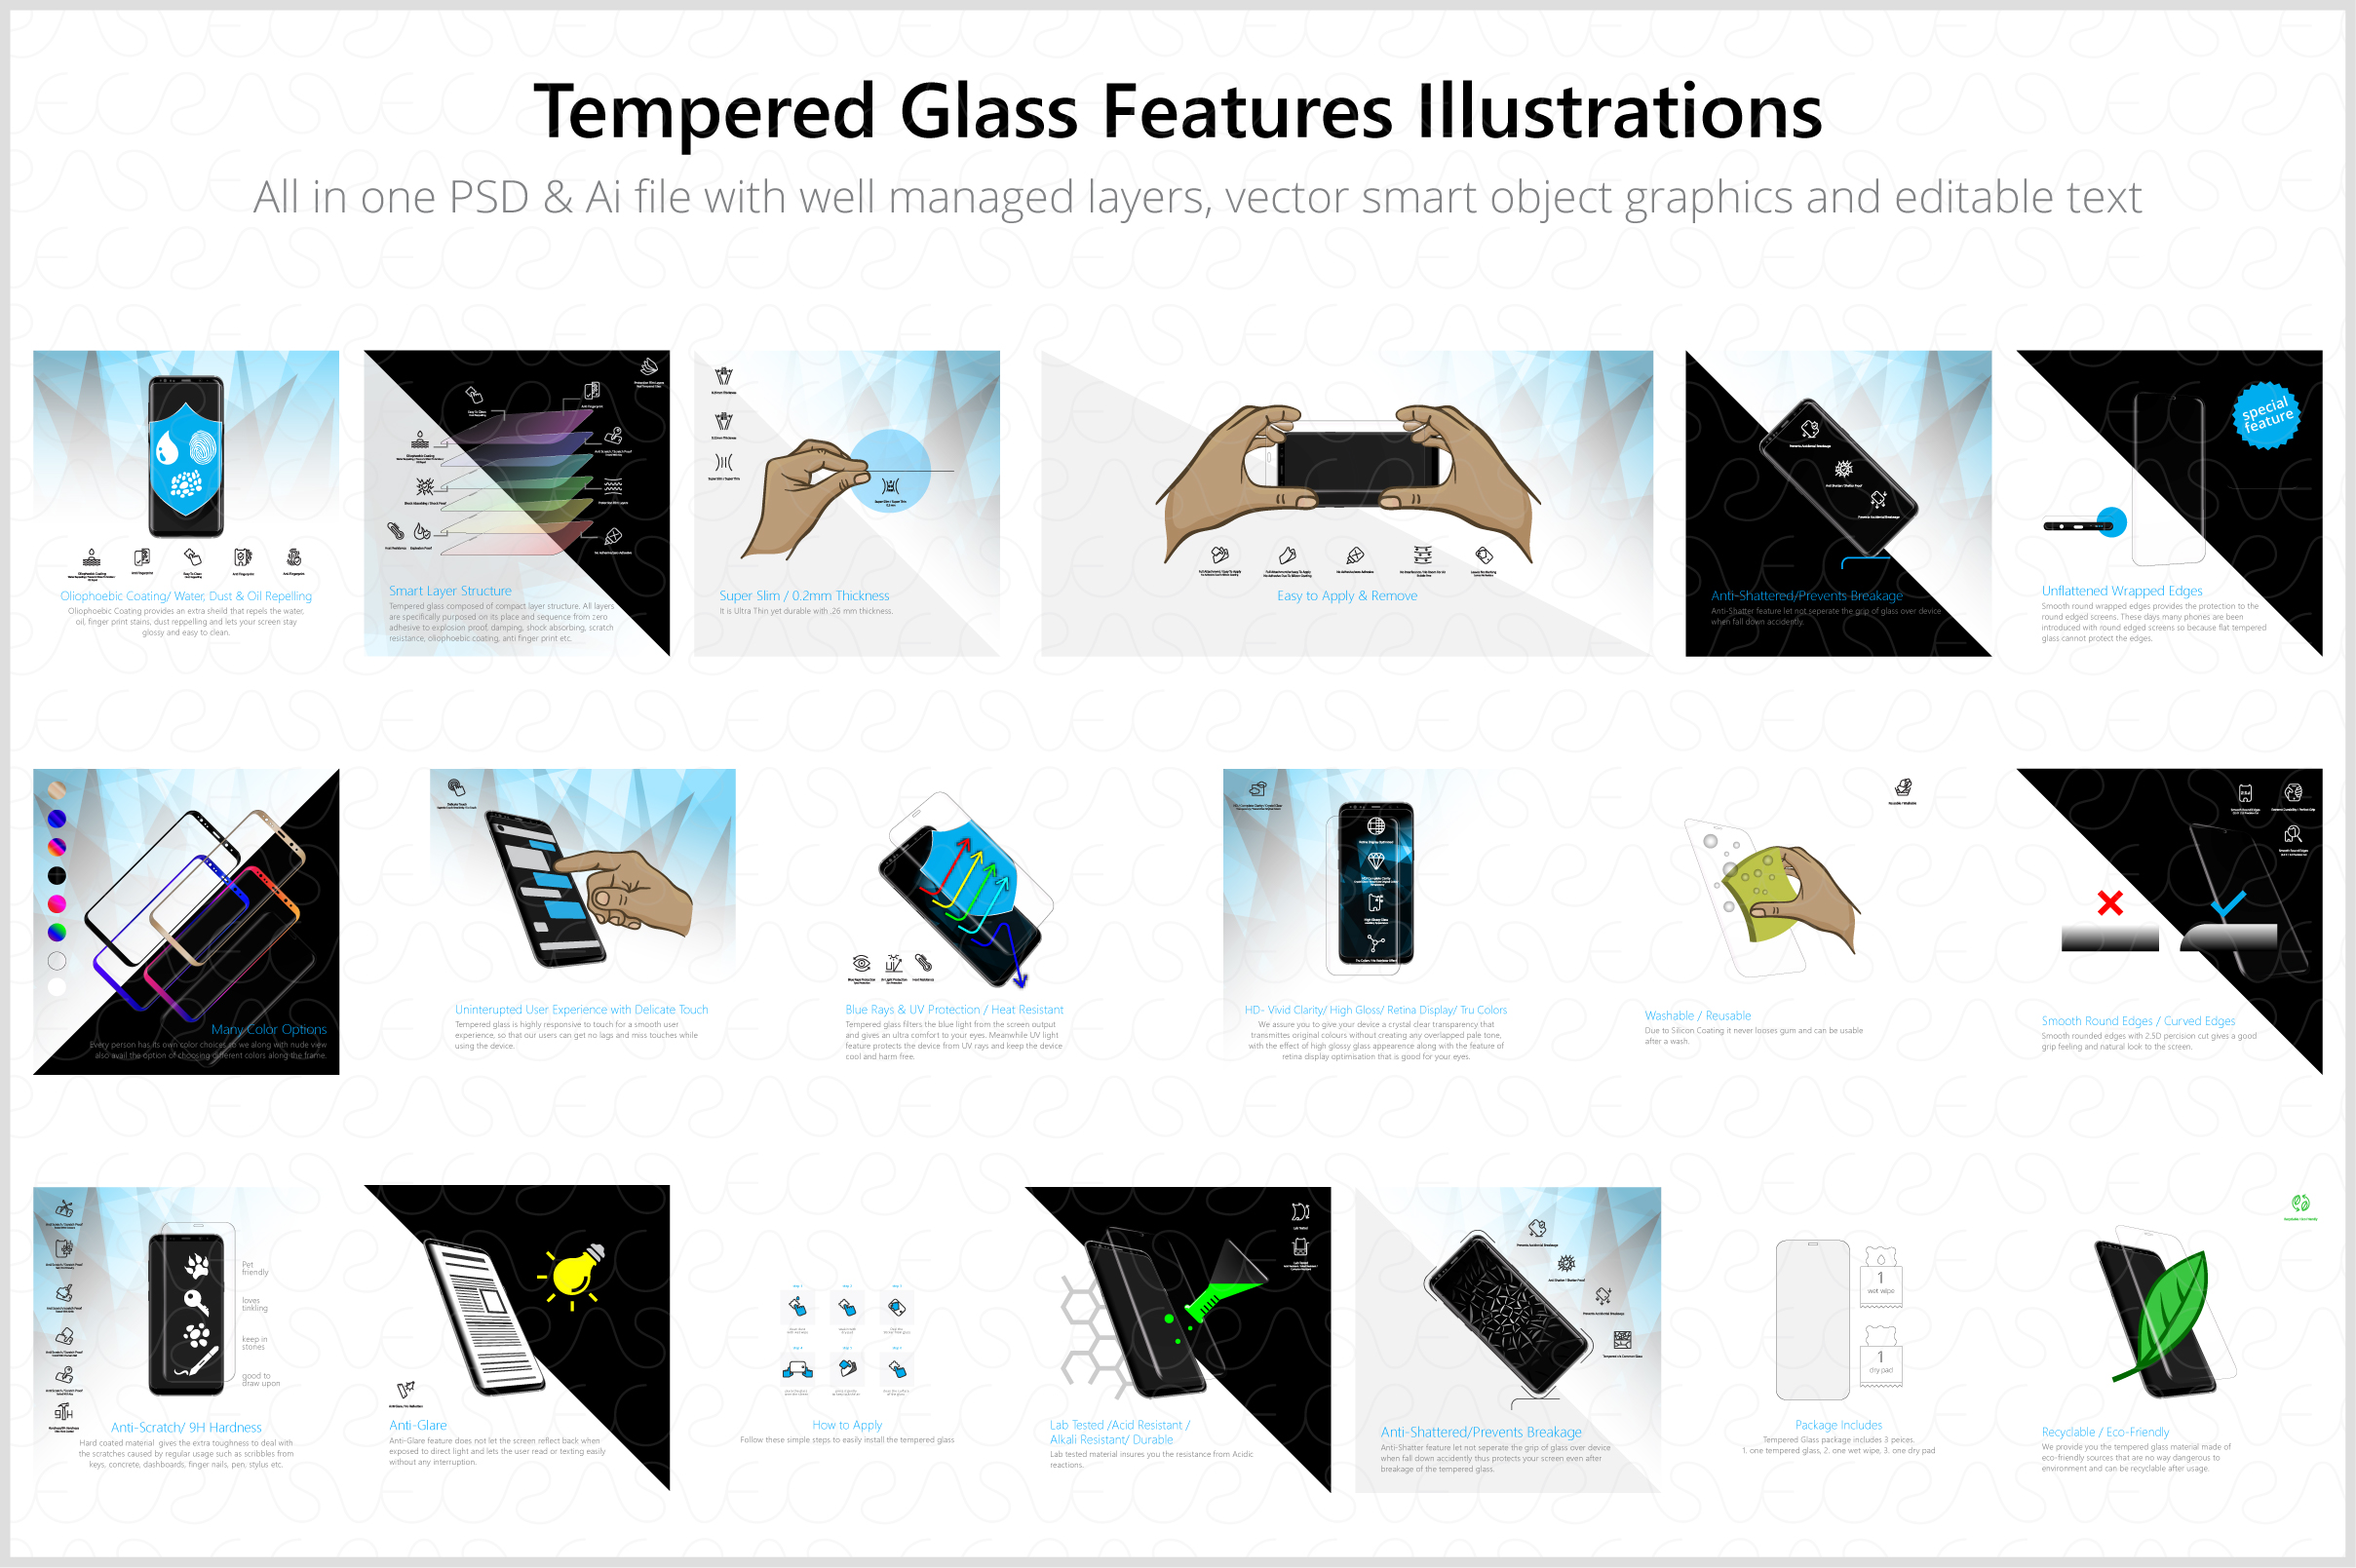 Tempered Glass Features Illustrations & Icons Pack example image 4